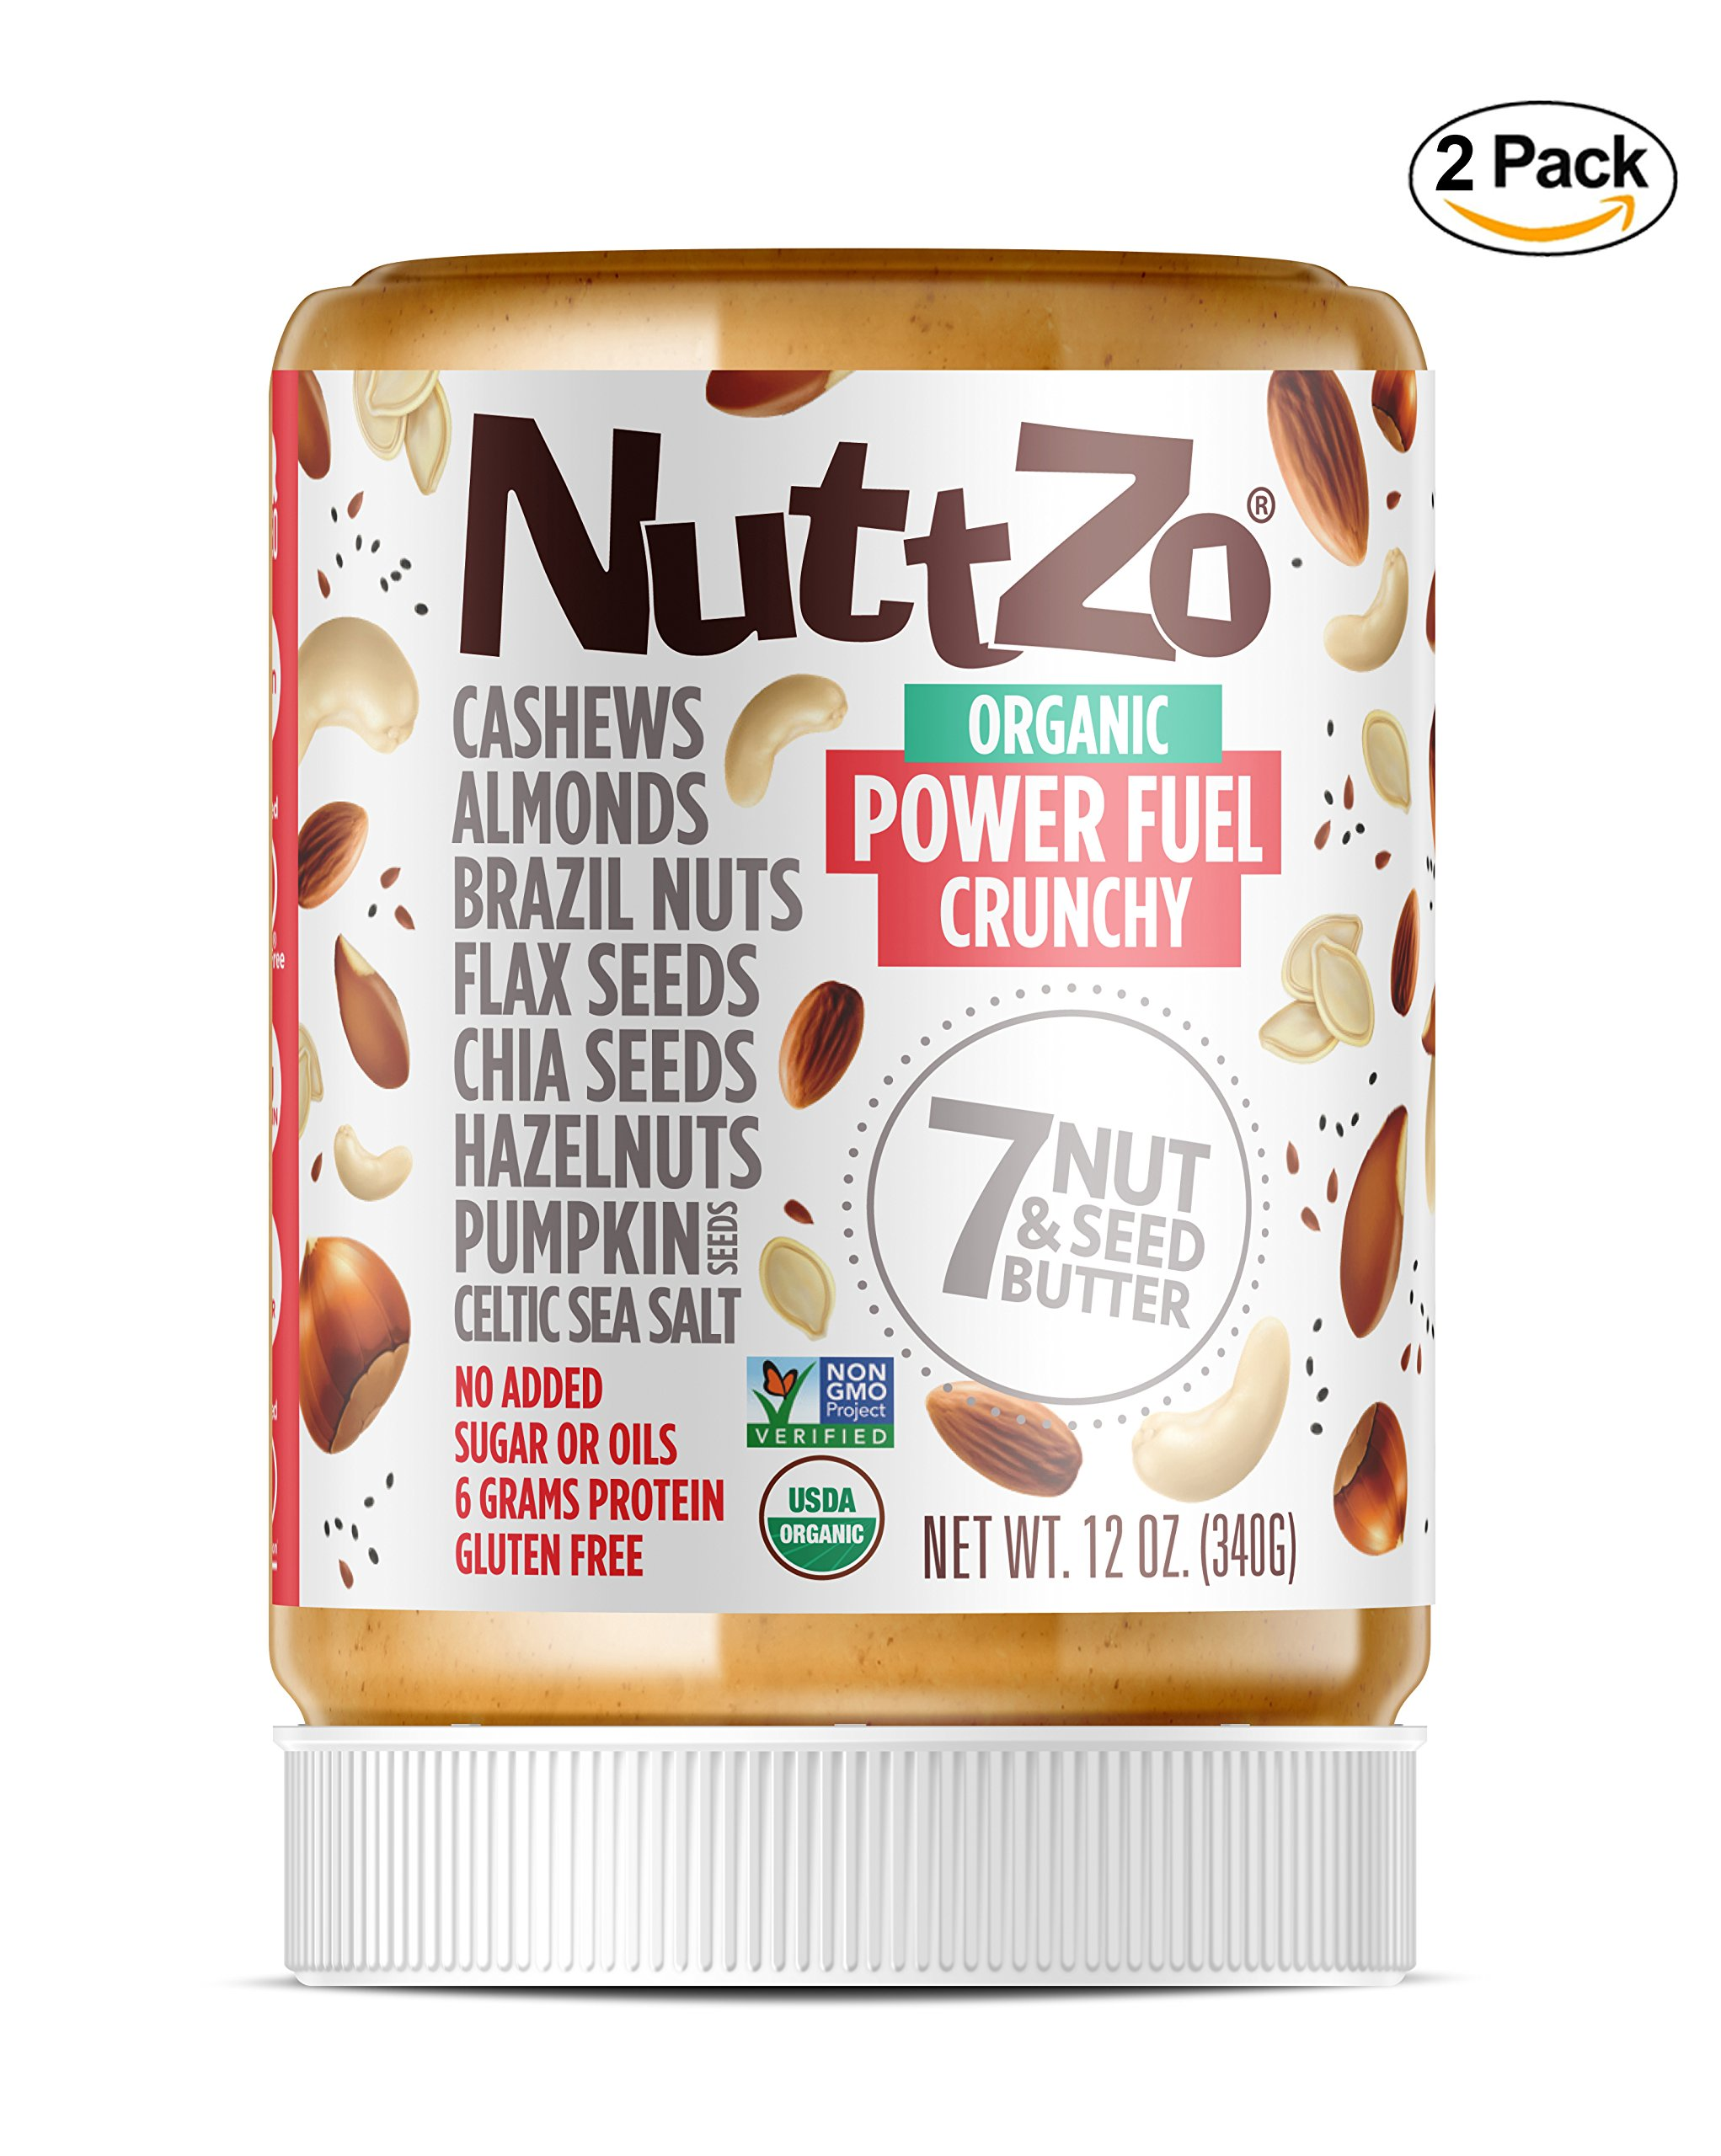 Nuttzo Organic Crunchy Paleo Power Fuel Seven Nut and Seed Butter, Peanut Free, 12 oz, 2 Pack